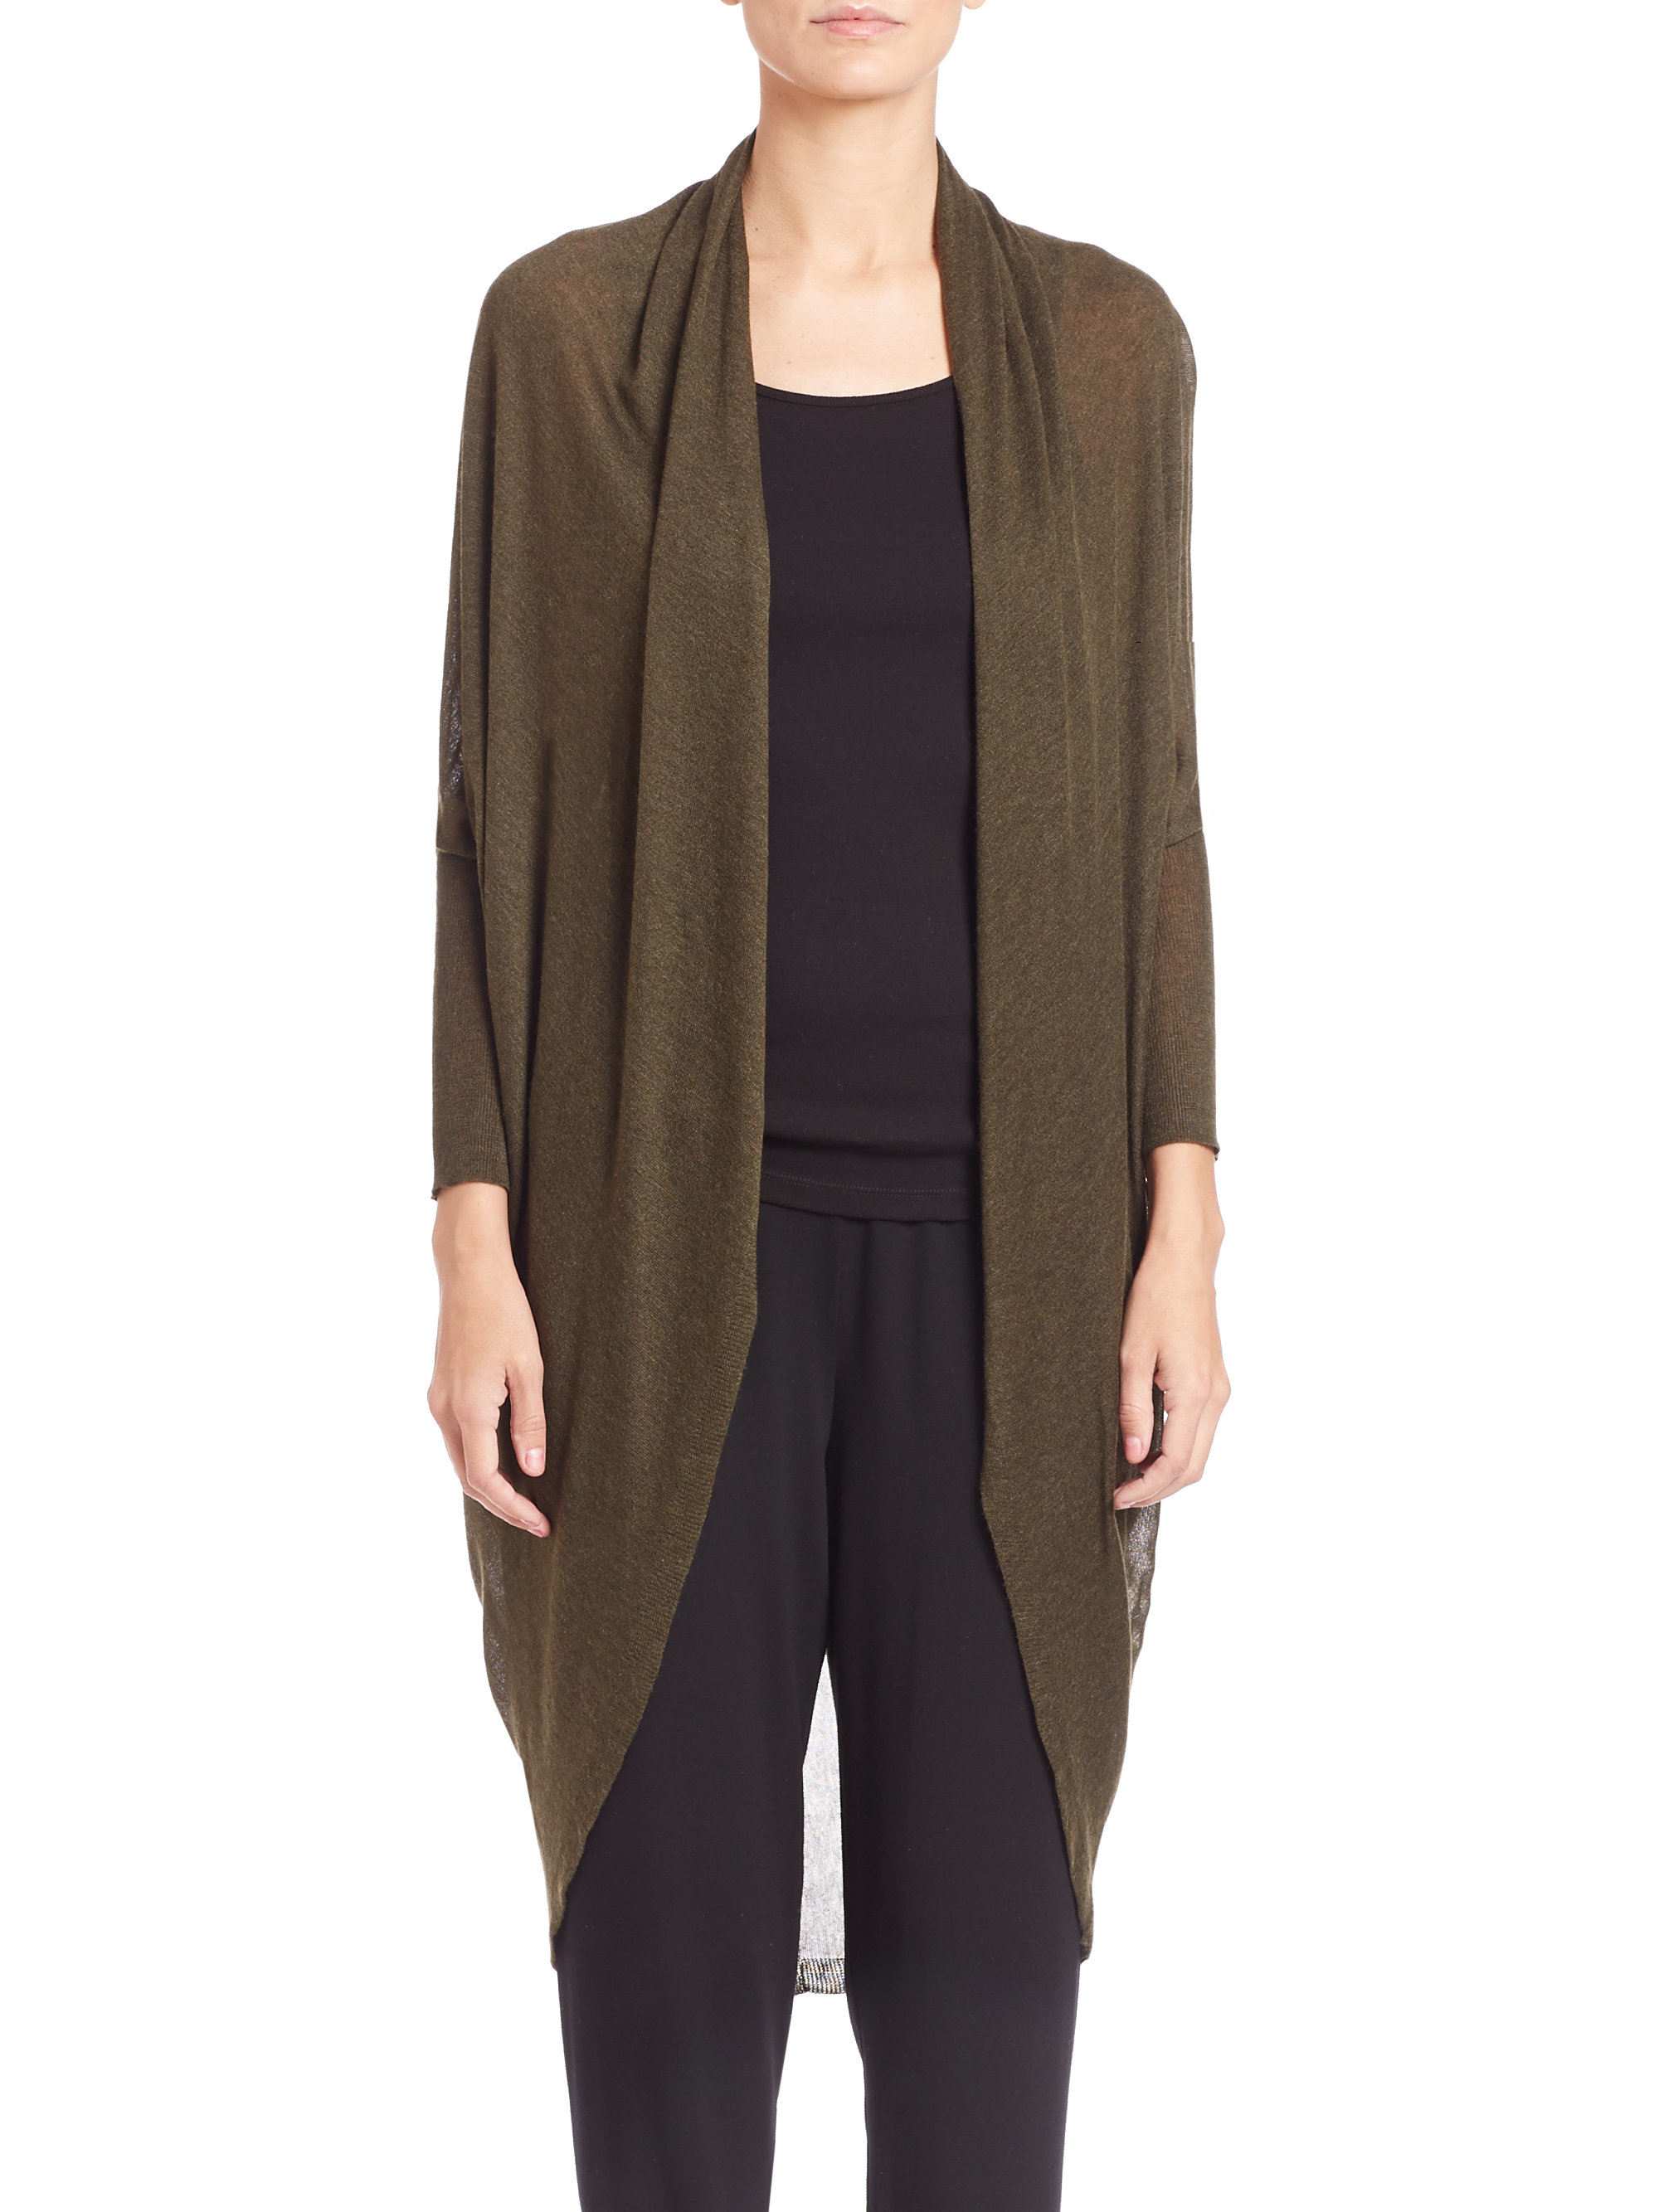 Eileen fisher Knit Long Cocoon Cardigan in Brown | Lyst